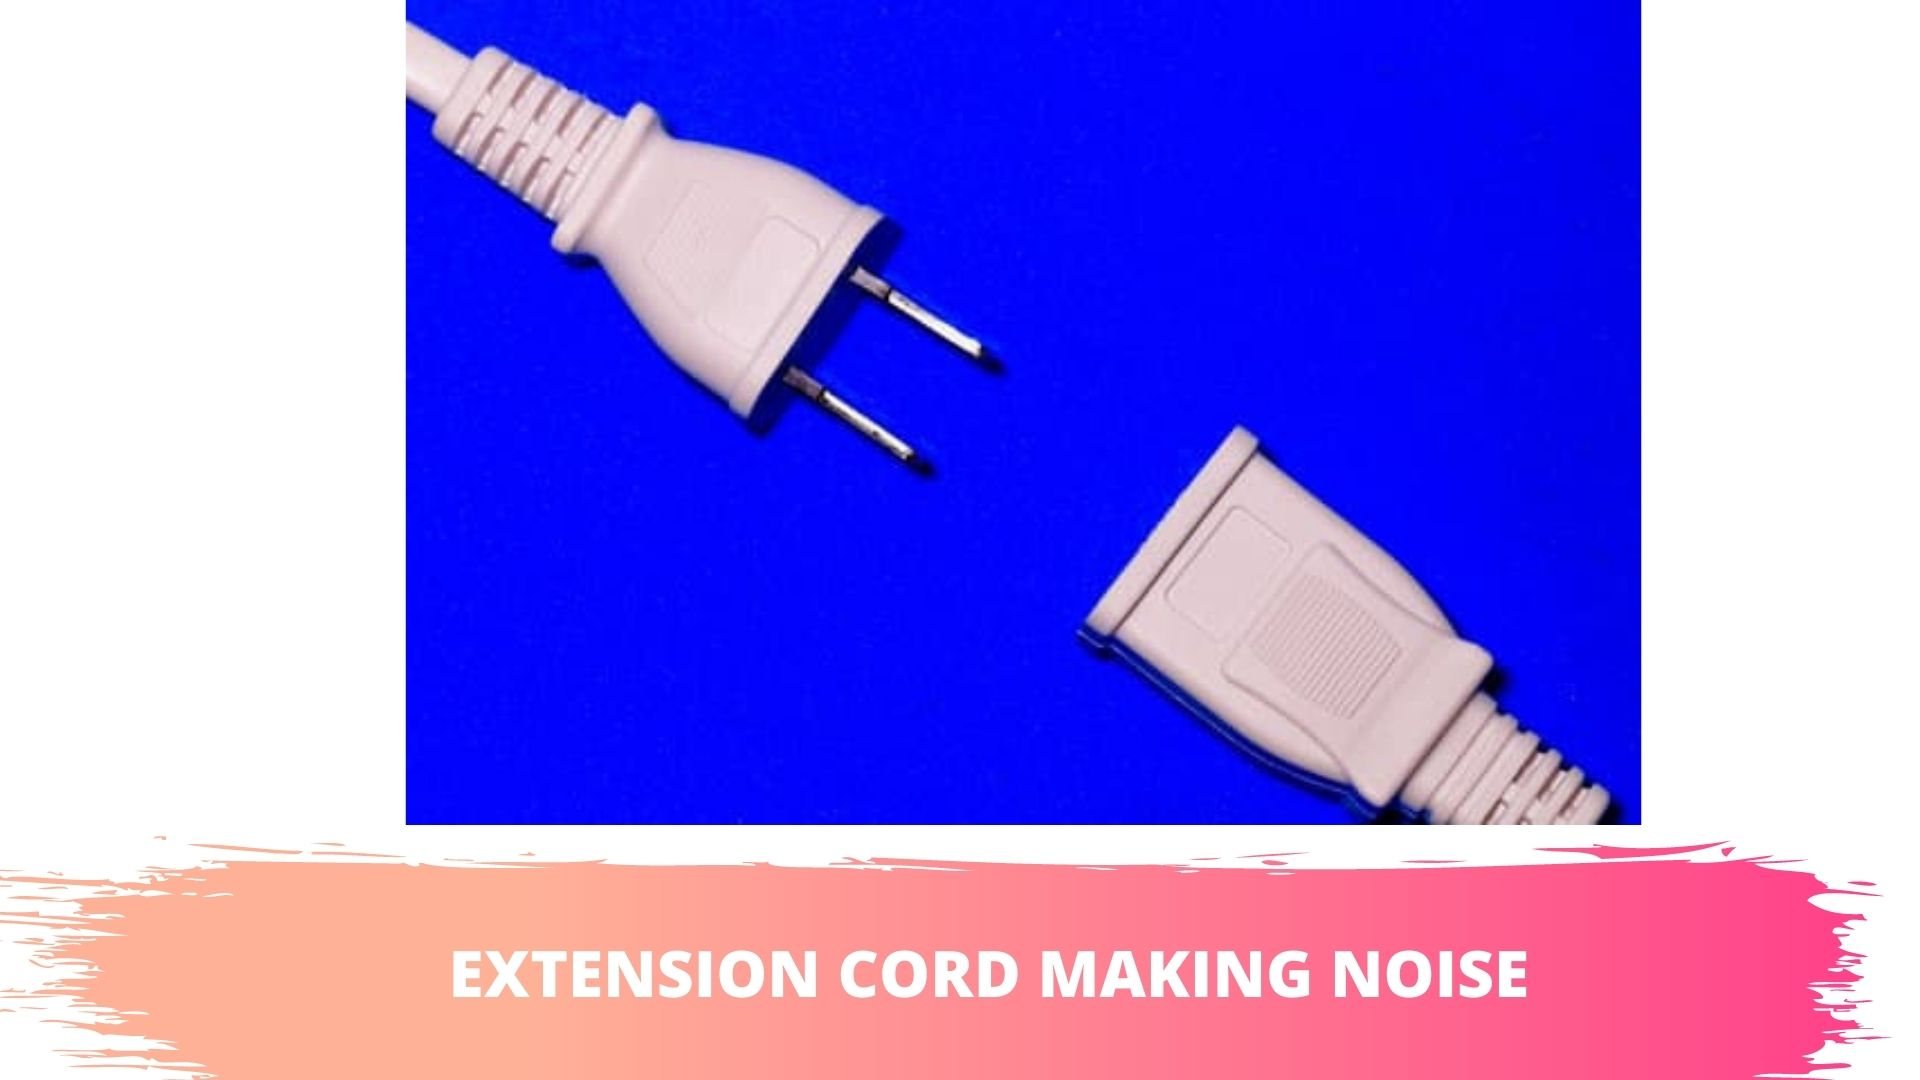 exension cord sparking, exploded, crackling, beeping, hissing noise